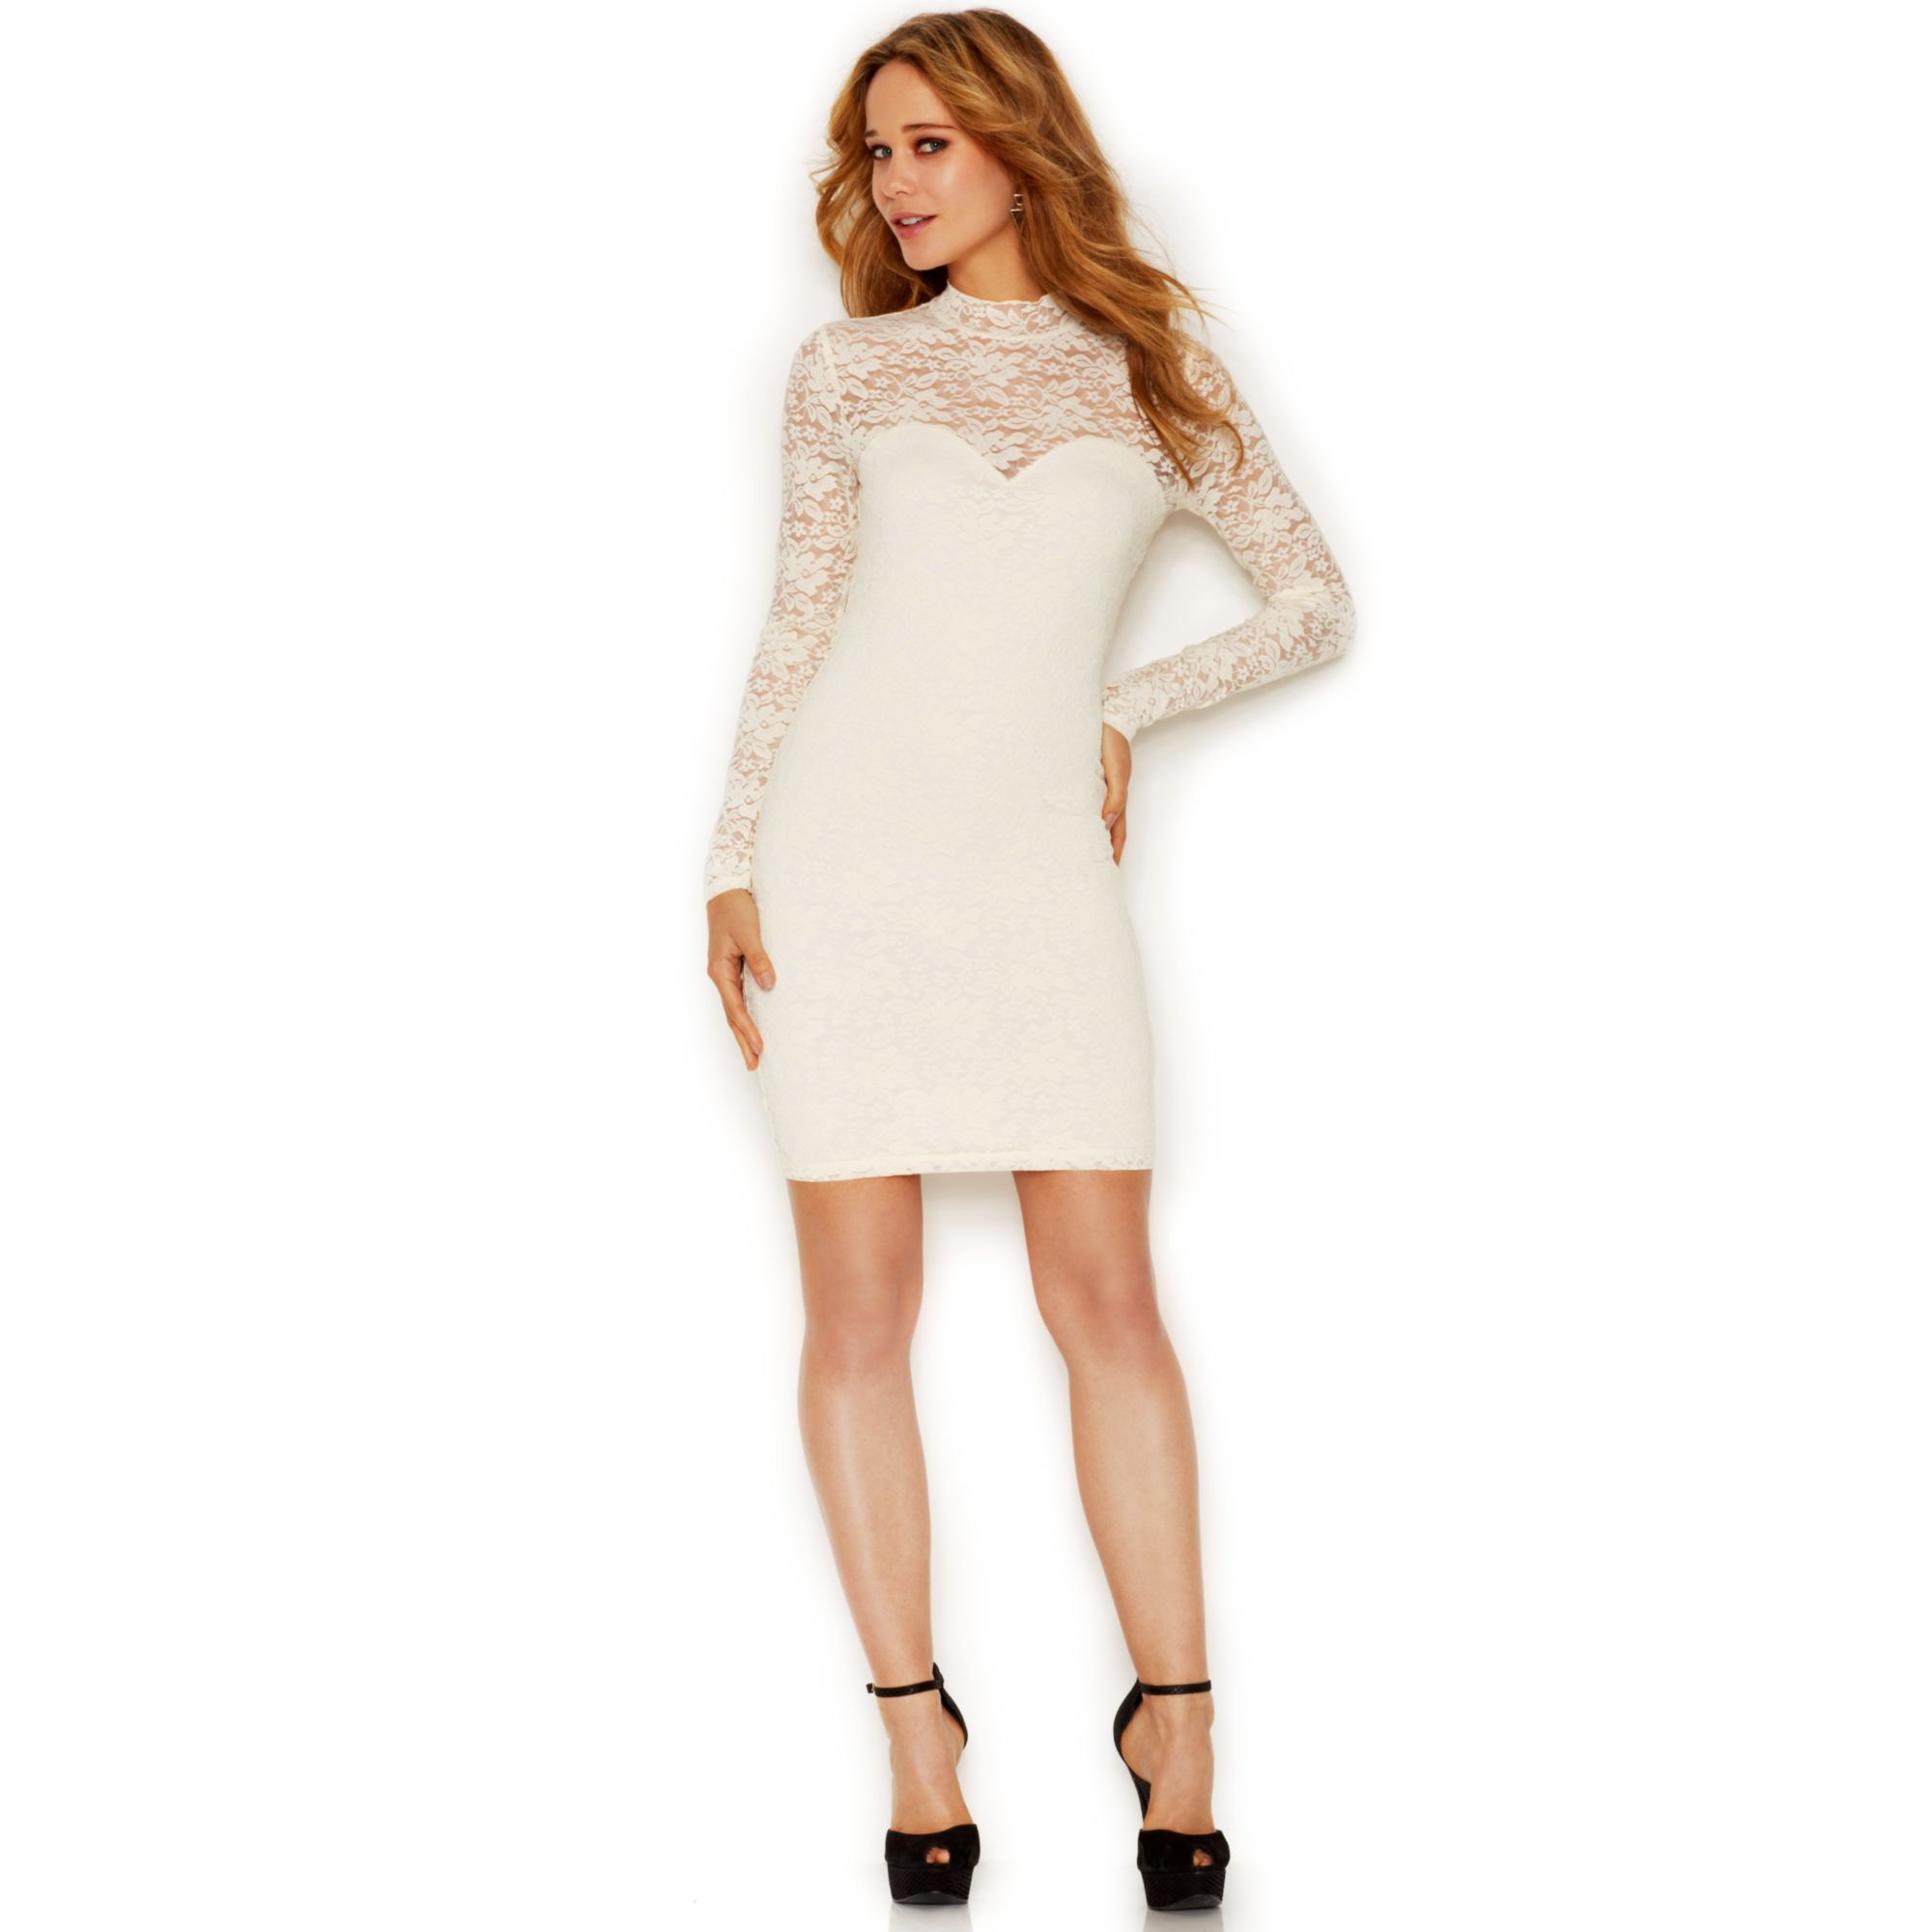 Turmec » guess long sleeve flare dress with embellished neckline 9f7c5a75e